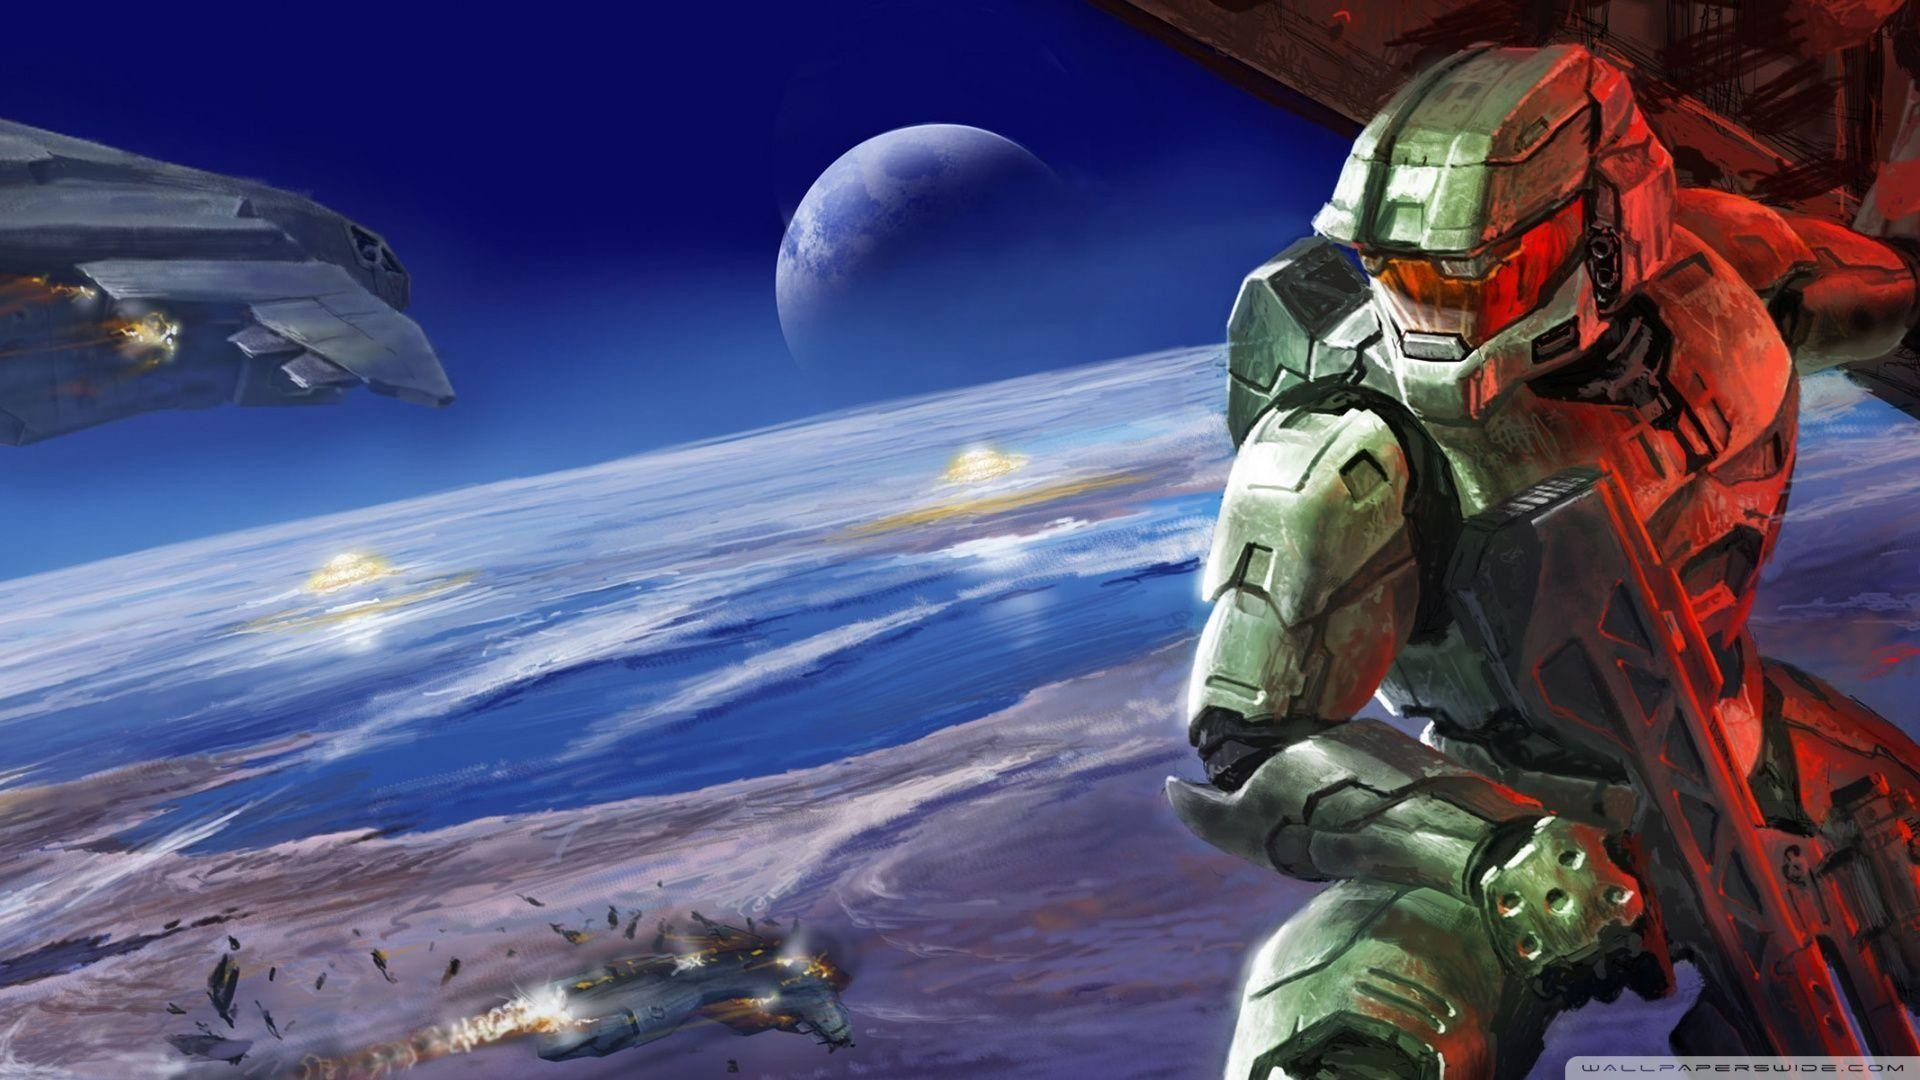 Wallpapers For > Halo Ring Wallpaper 1920×1080